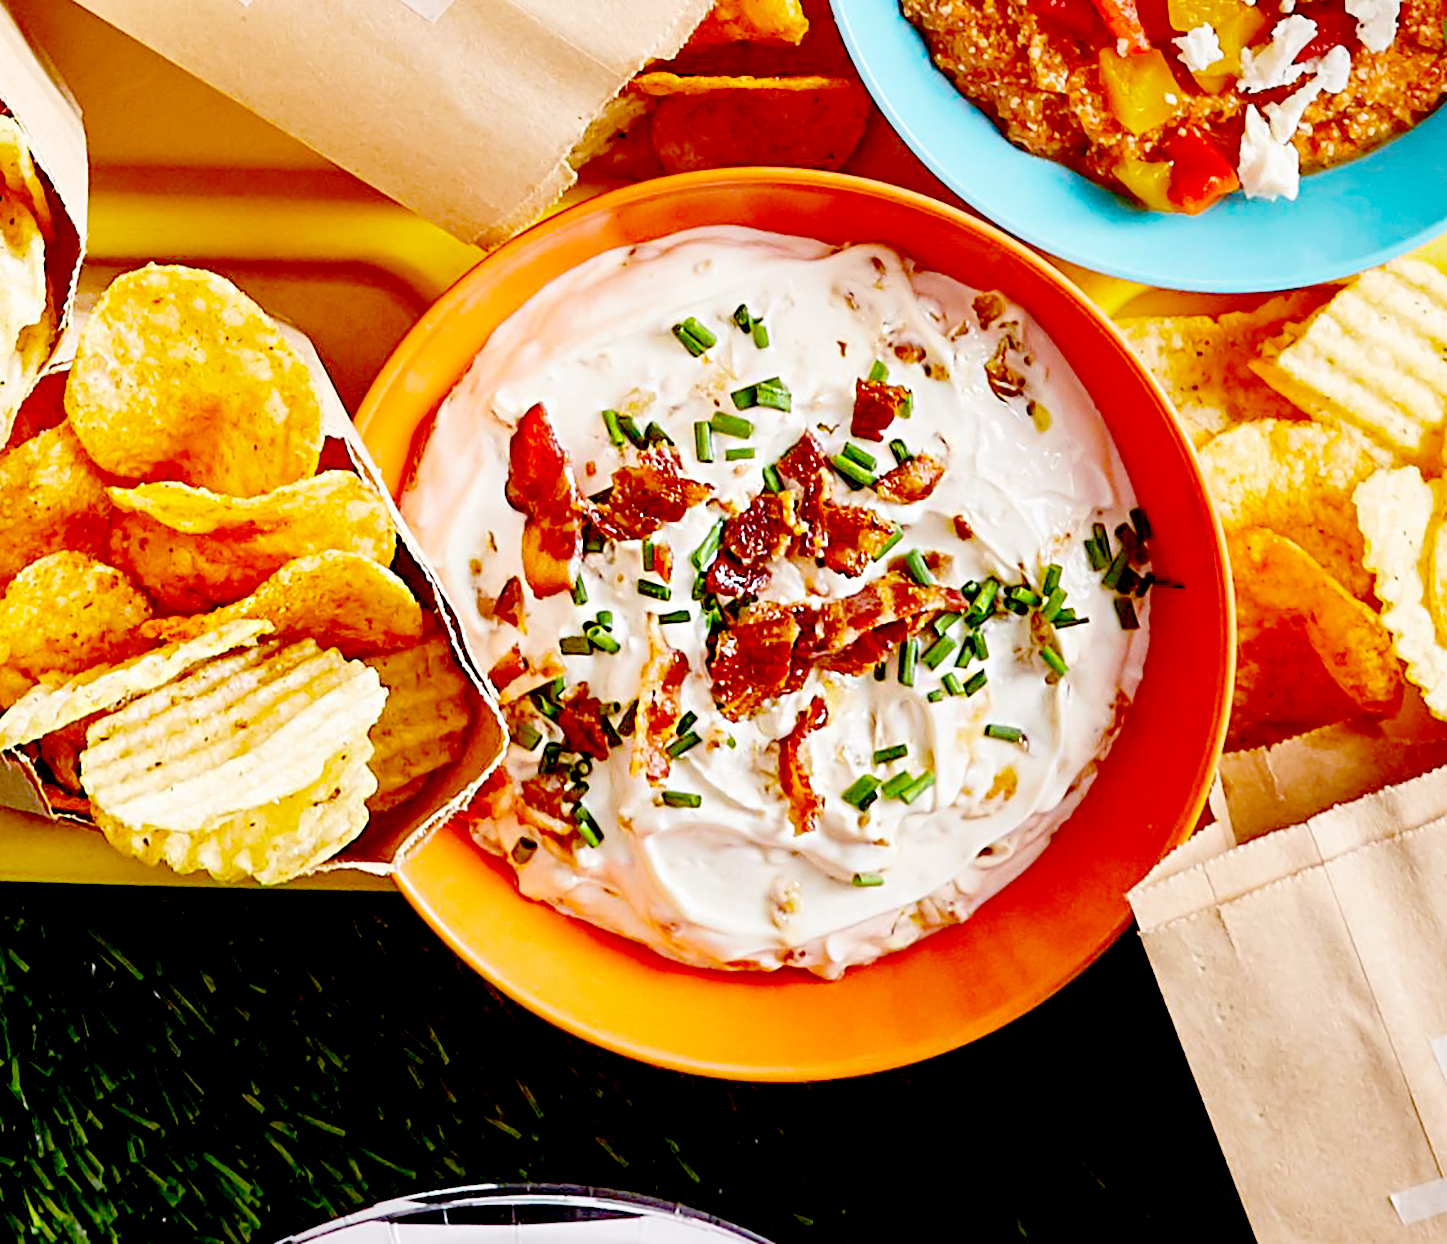 Tangy Sour Cream and Onion Dip